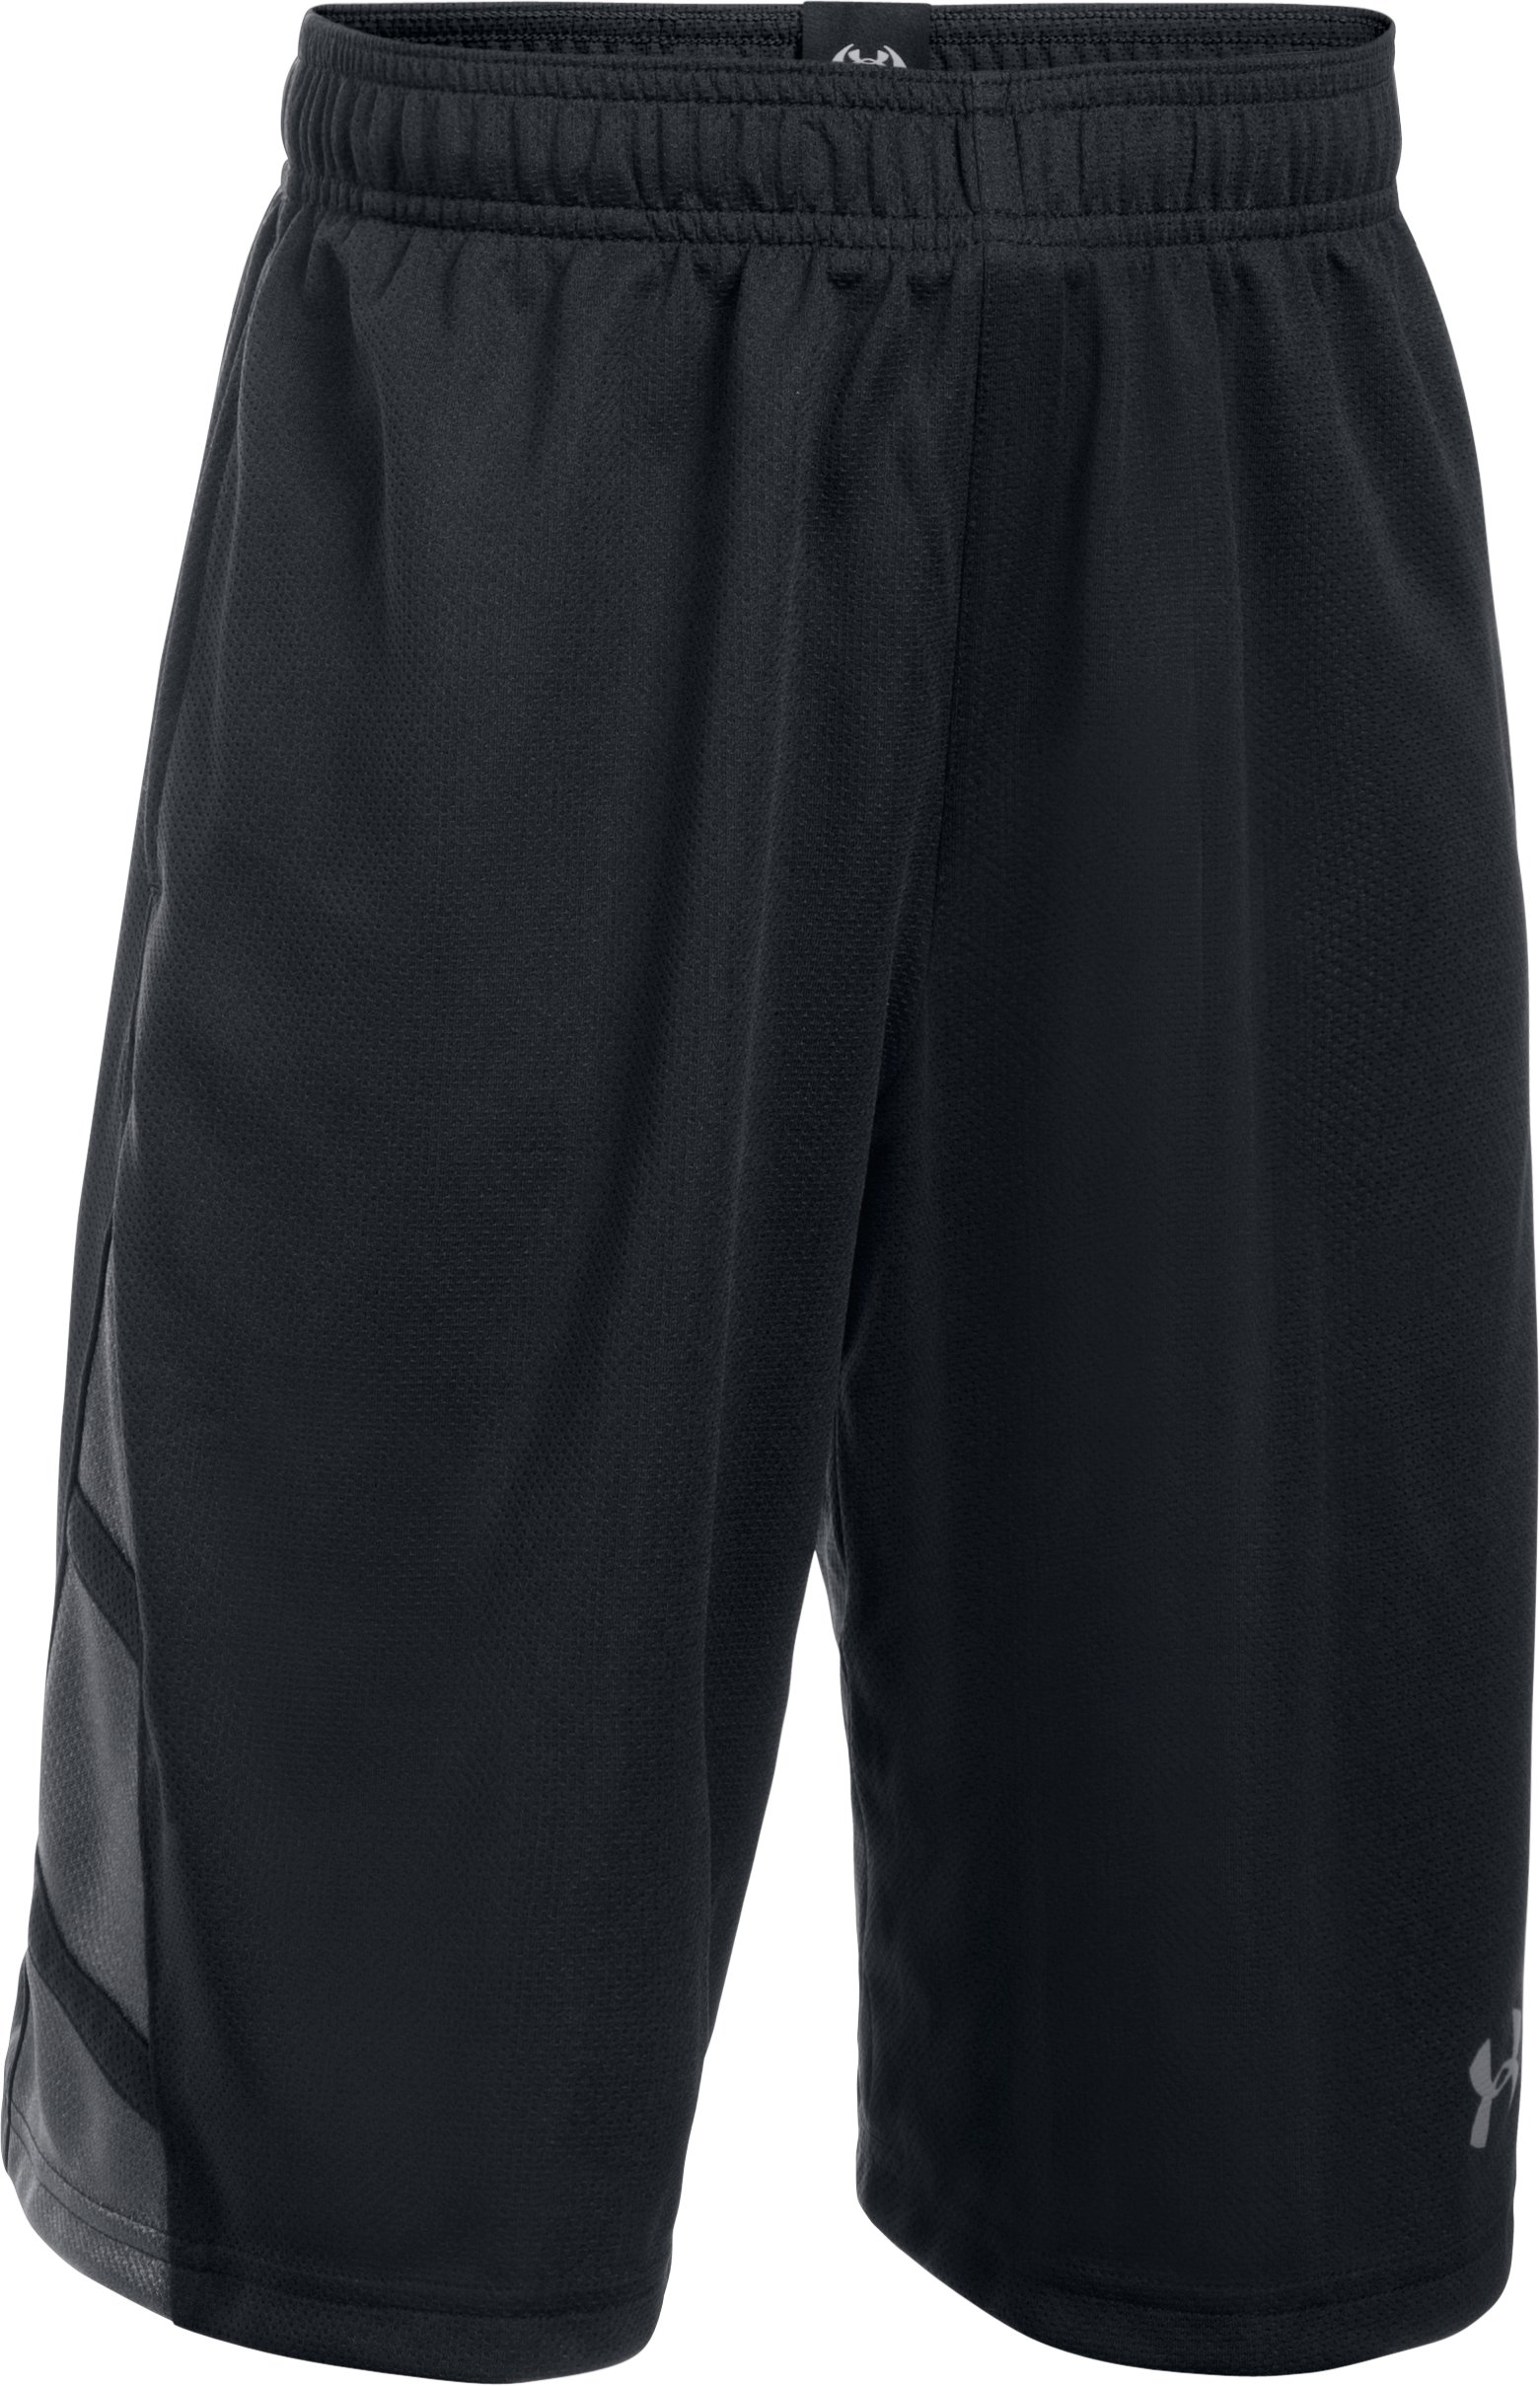 Boys' UA Triple Double Shorts, Black , undefined